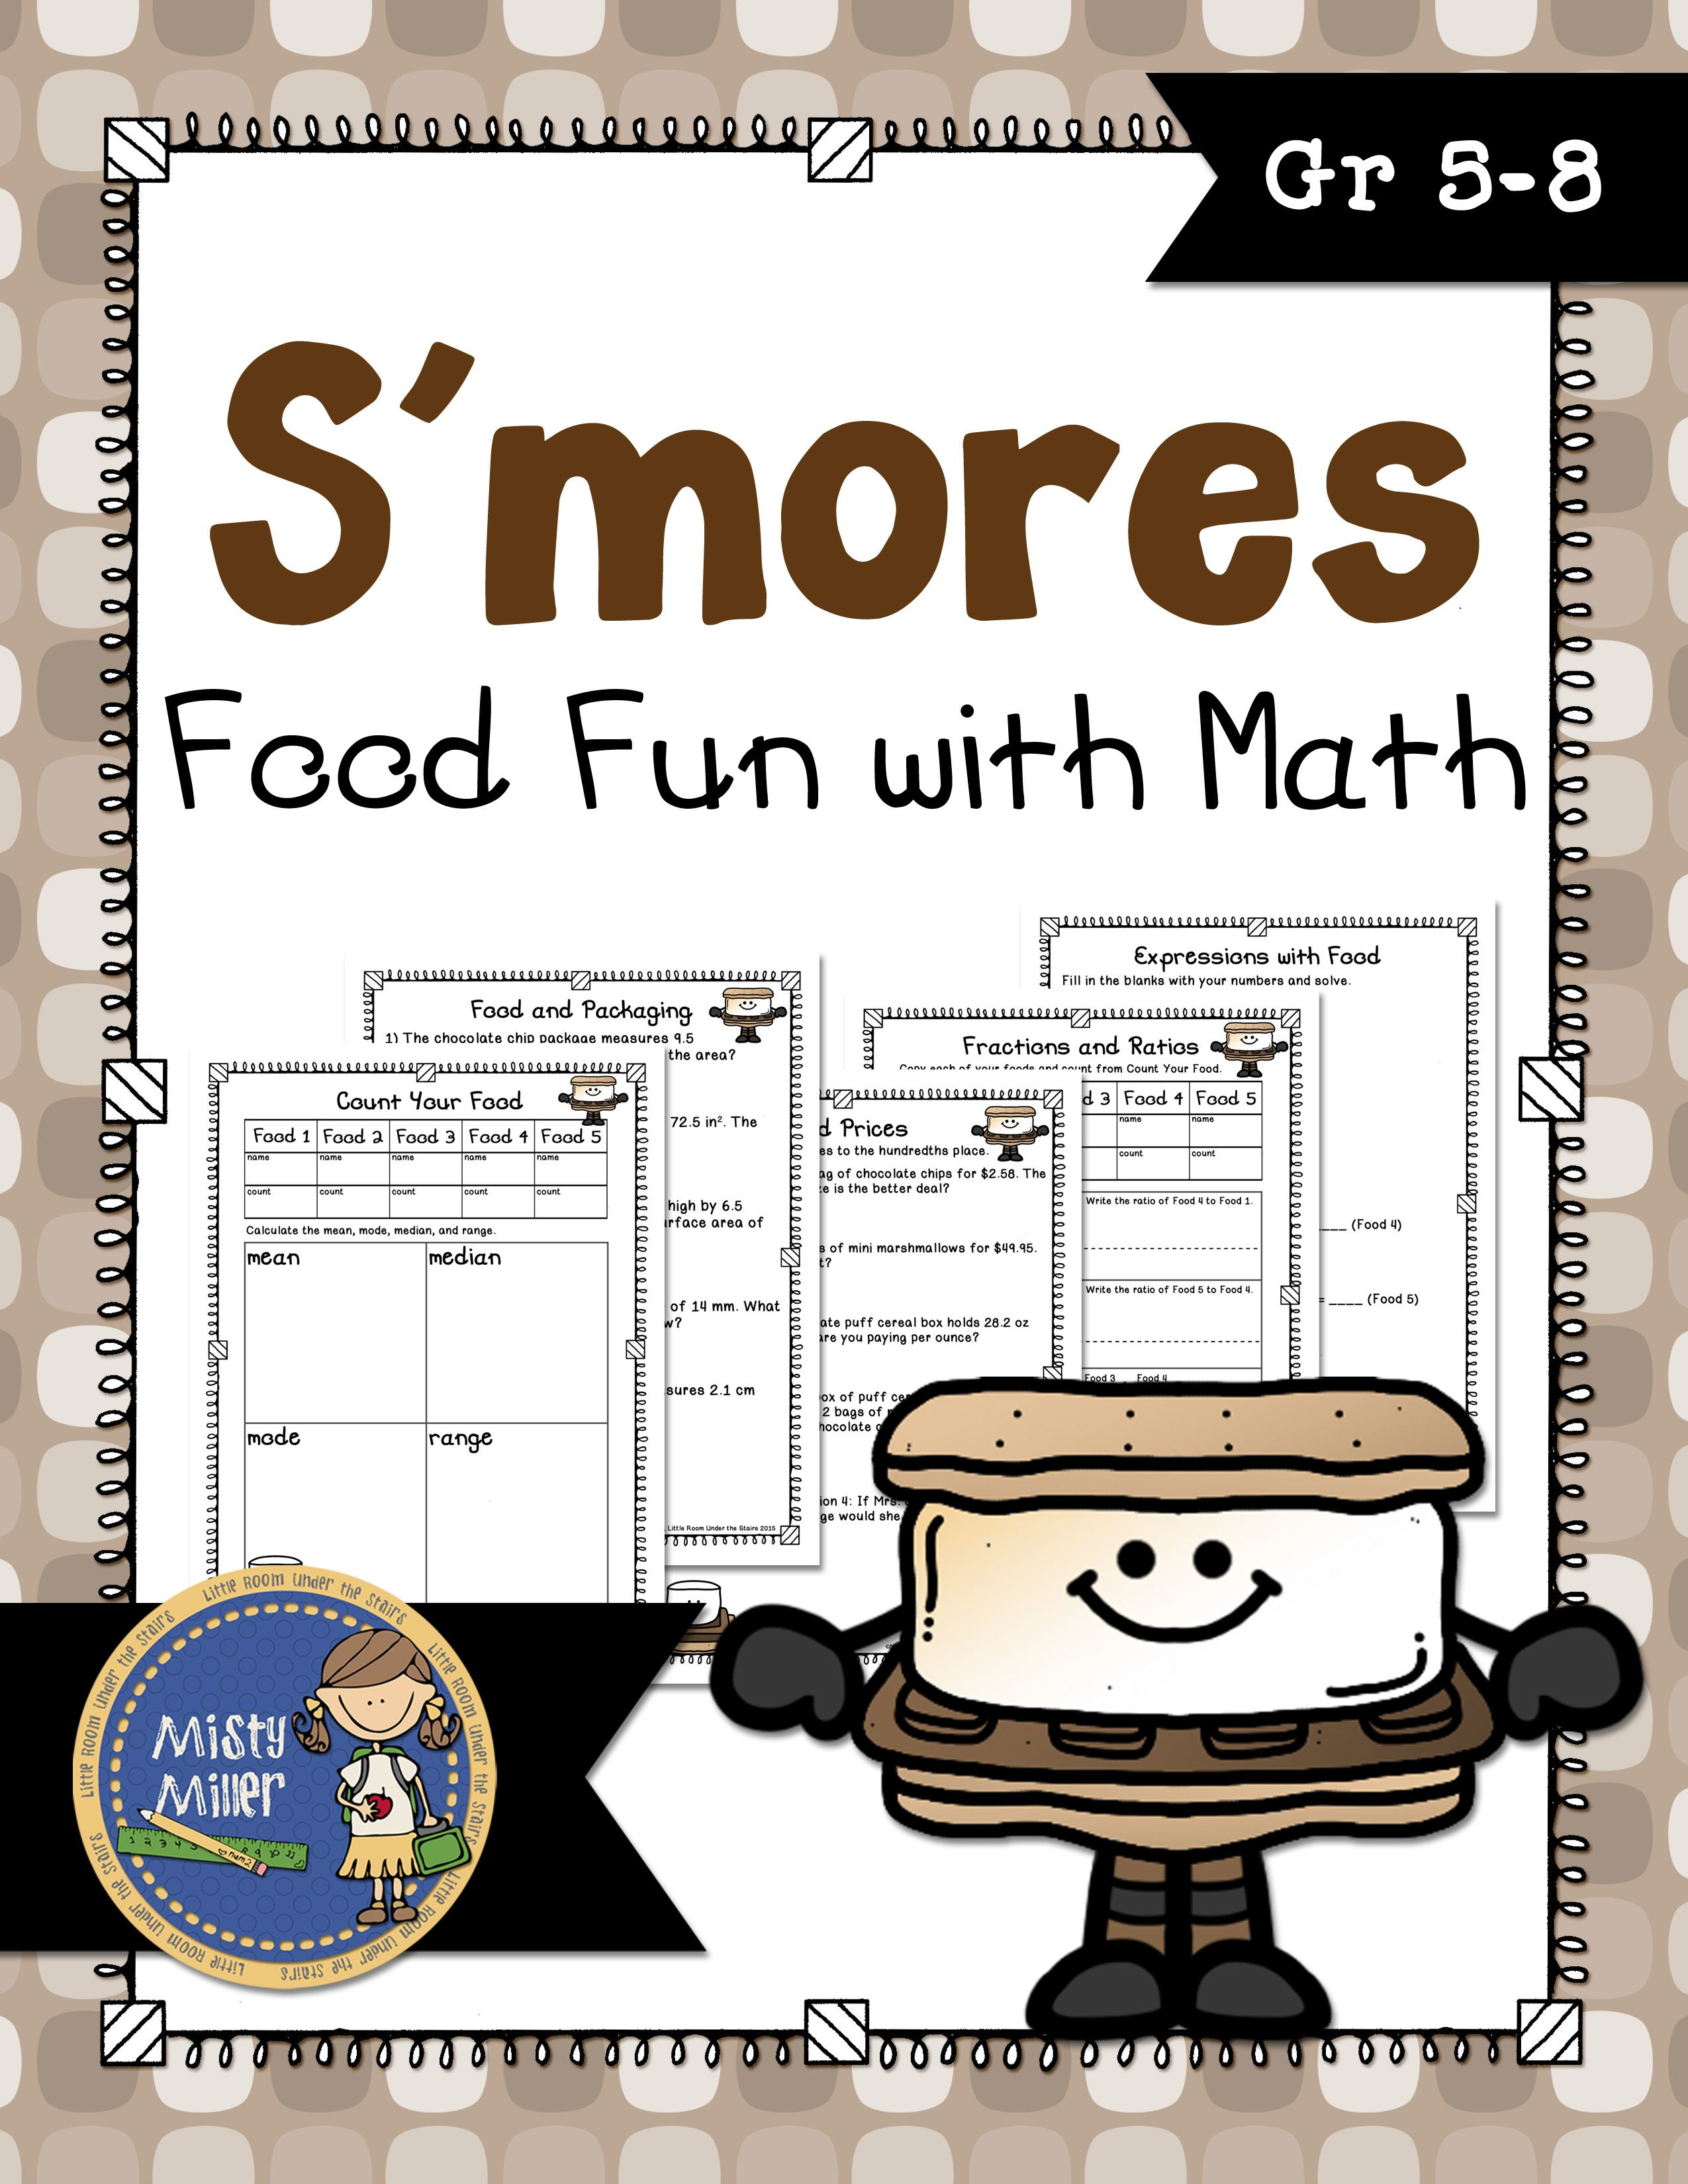 S Mores Food Fun With Math Packet Allows You To Give Your Kids A Treat And Some Math Problems This Packet Includes 5 Pages O Math Packets Math Math Activities [ 3300 x 2550 Pixel ]